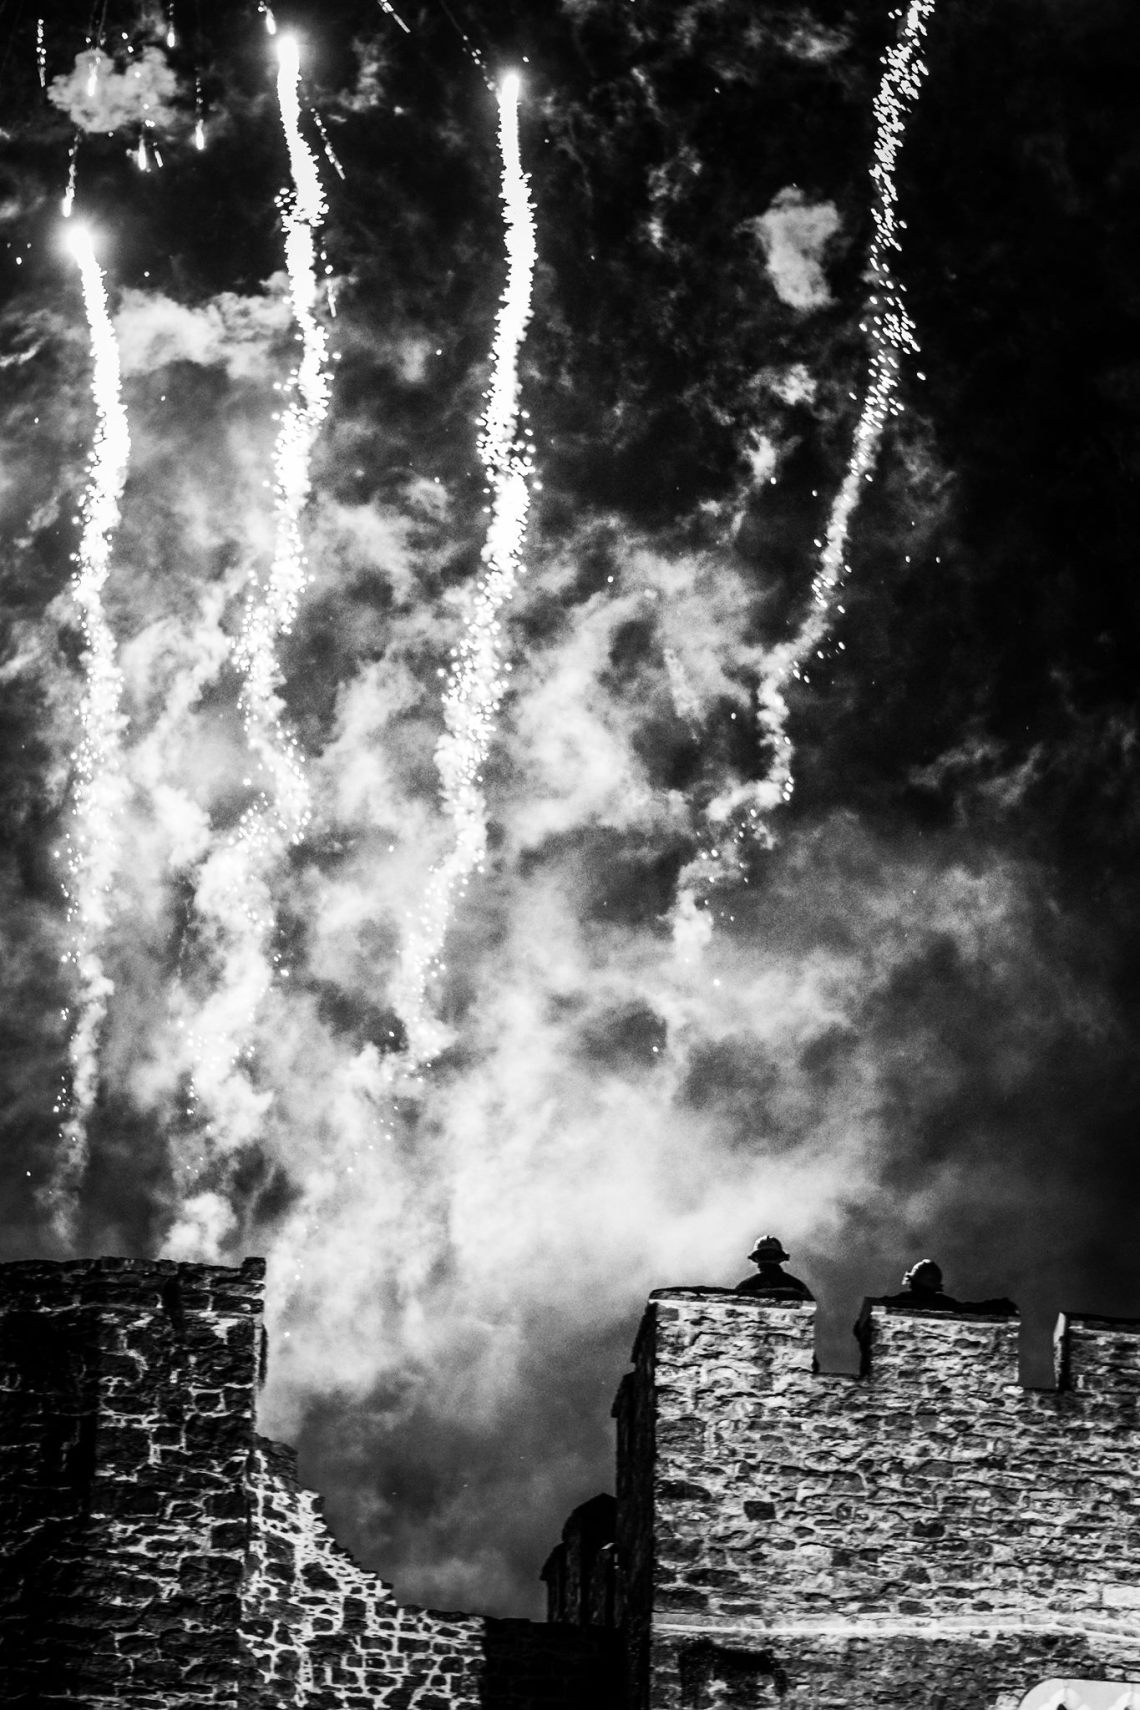 Halloween Fireworks go off in the town of Swords Dublin Ireland. Firemen kept everyone safe